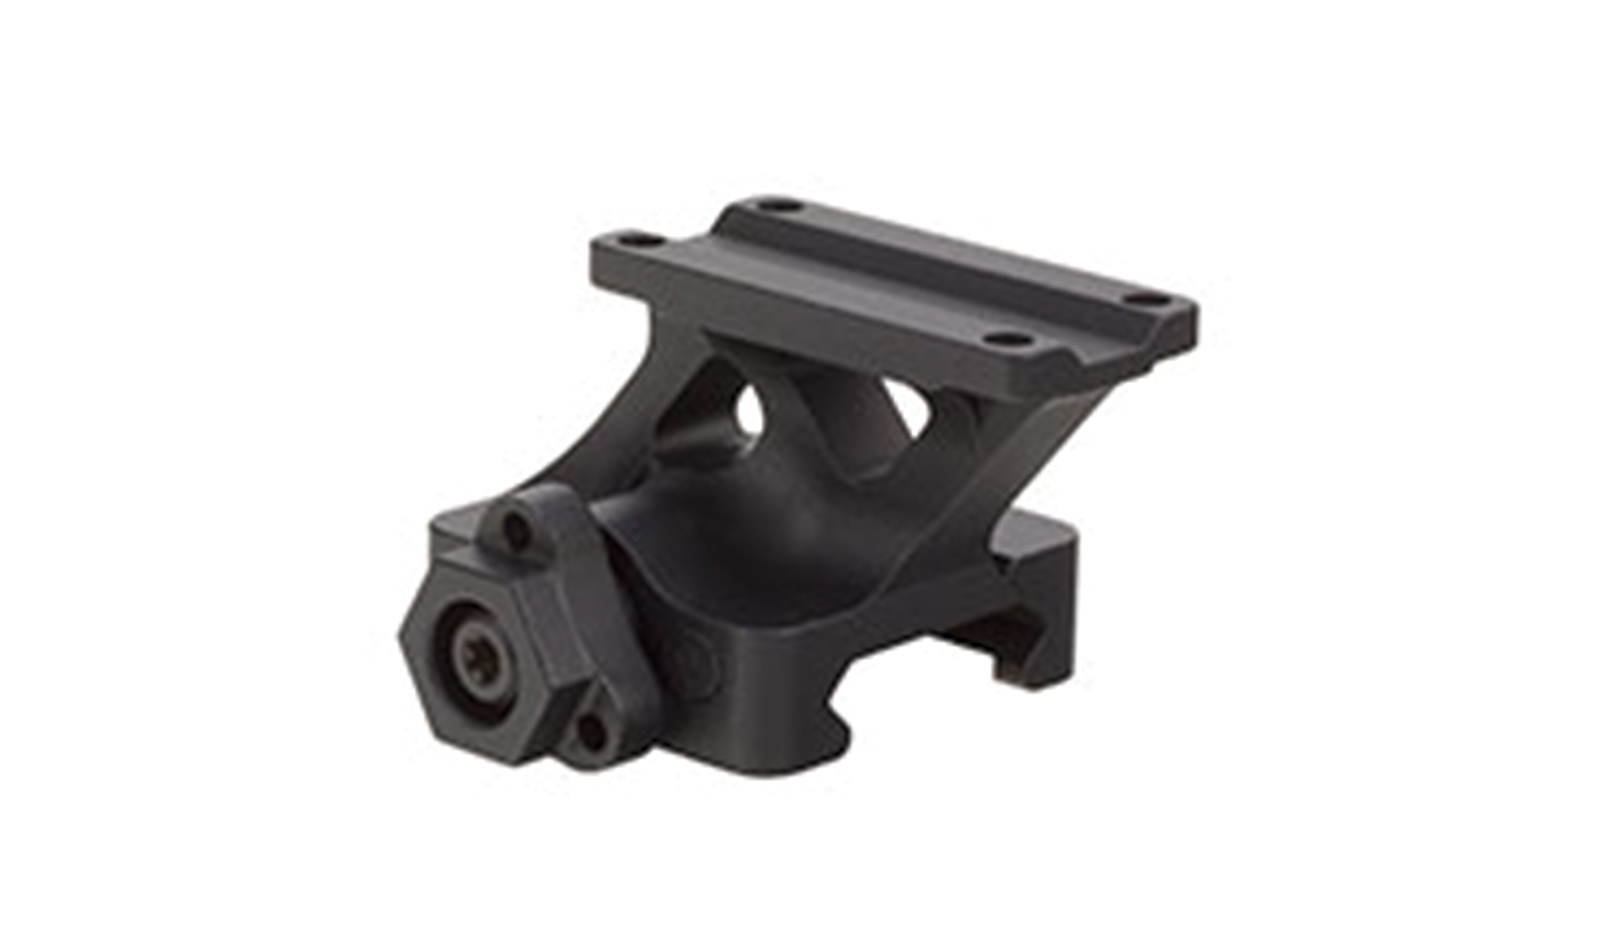 MRO® Quick Release Full Co-Witness Mount